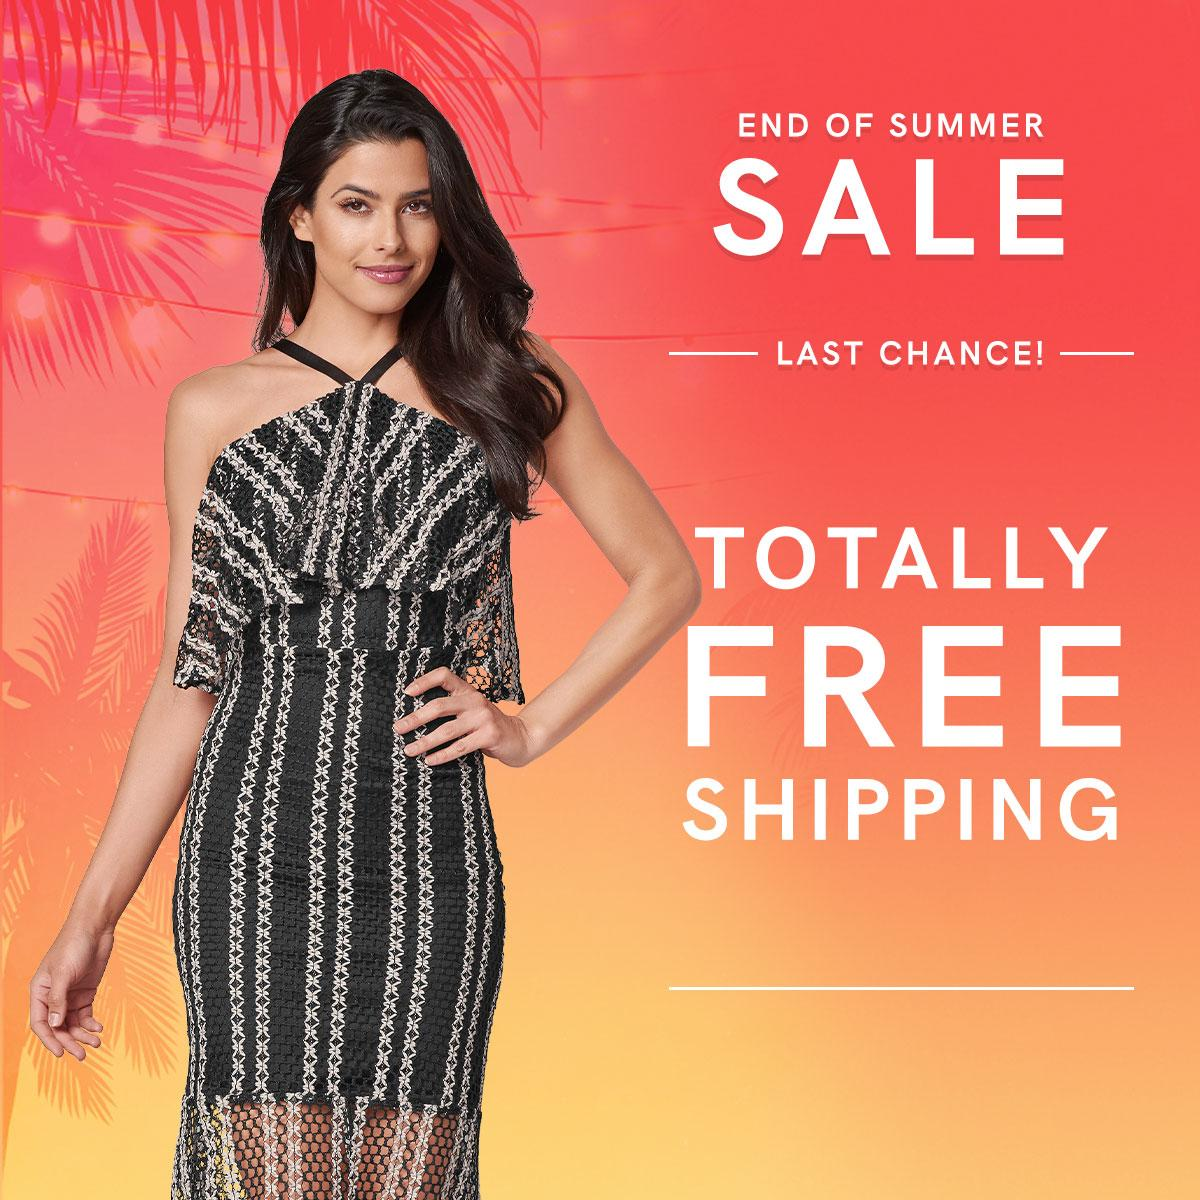 Find a dress for any occasion up to 75% off during our End of Summer Sale! Don't forget, FREE SHIPPING on all orders ends tonight at 11:59 PM ET. Click the links below to redeem!  Textured Two Tone Dress: https://t.co/jbxNYUuCvg  End of Summer Sale: https://t.co/4xU9x8Jv2v https://t.co/69xogpuhPs